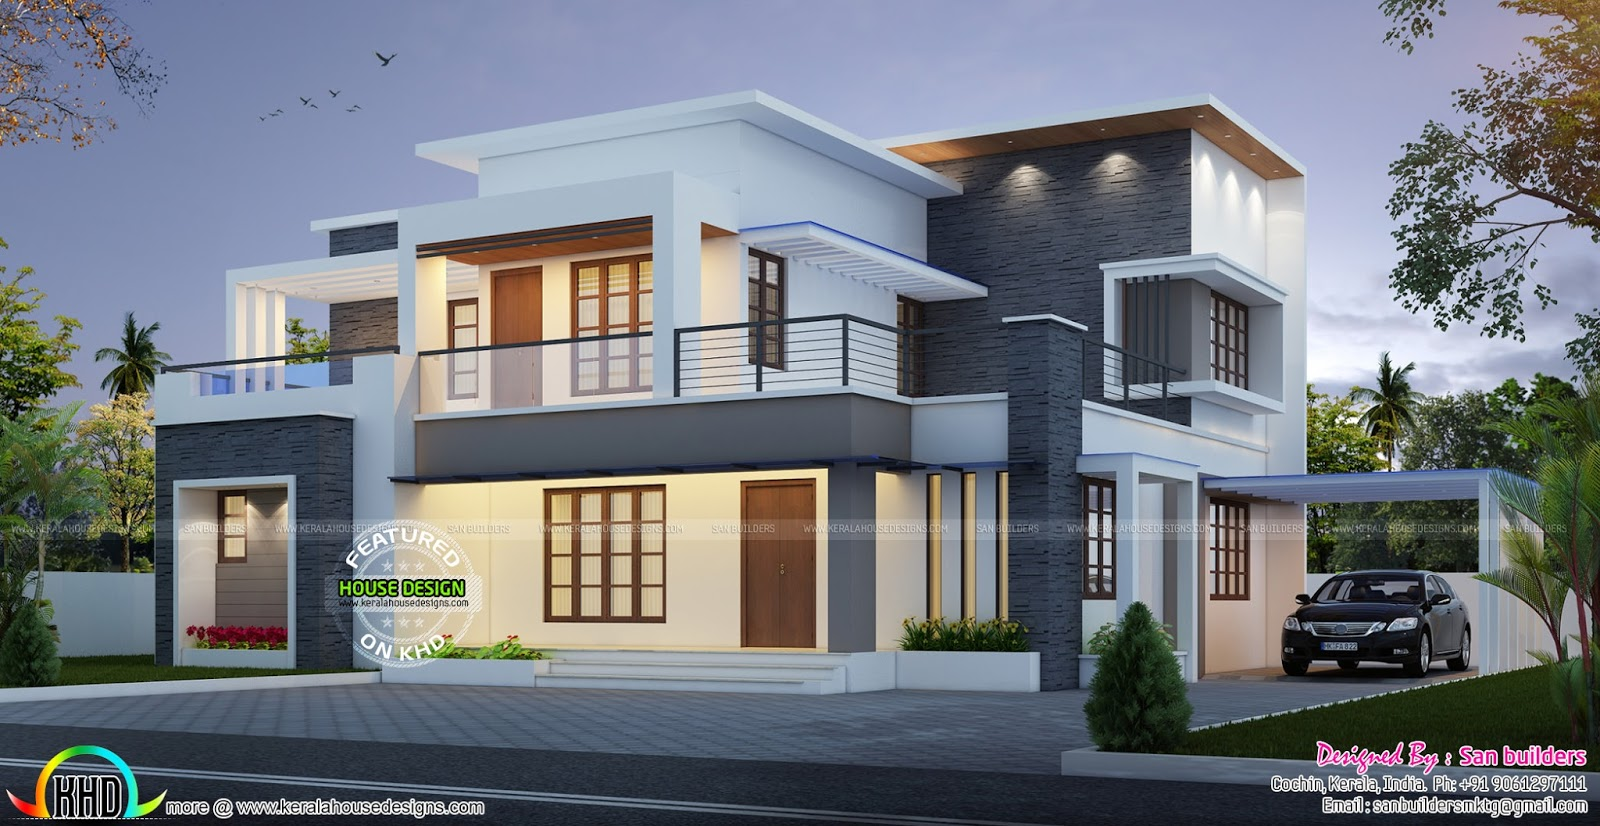 House plan and elevation by san builders kerala home for Modern villa plans and elevations